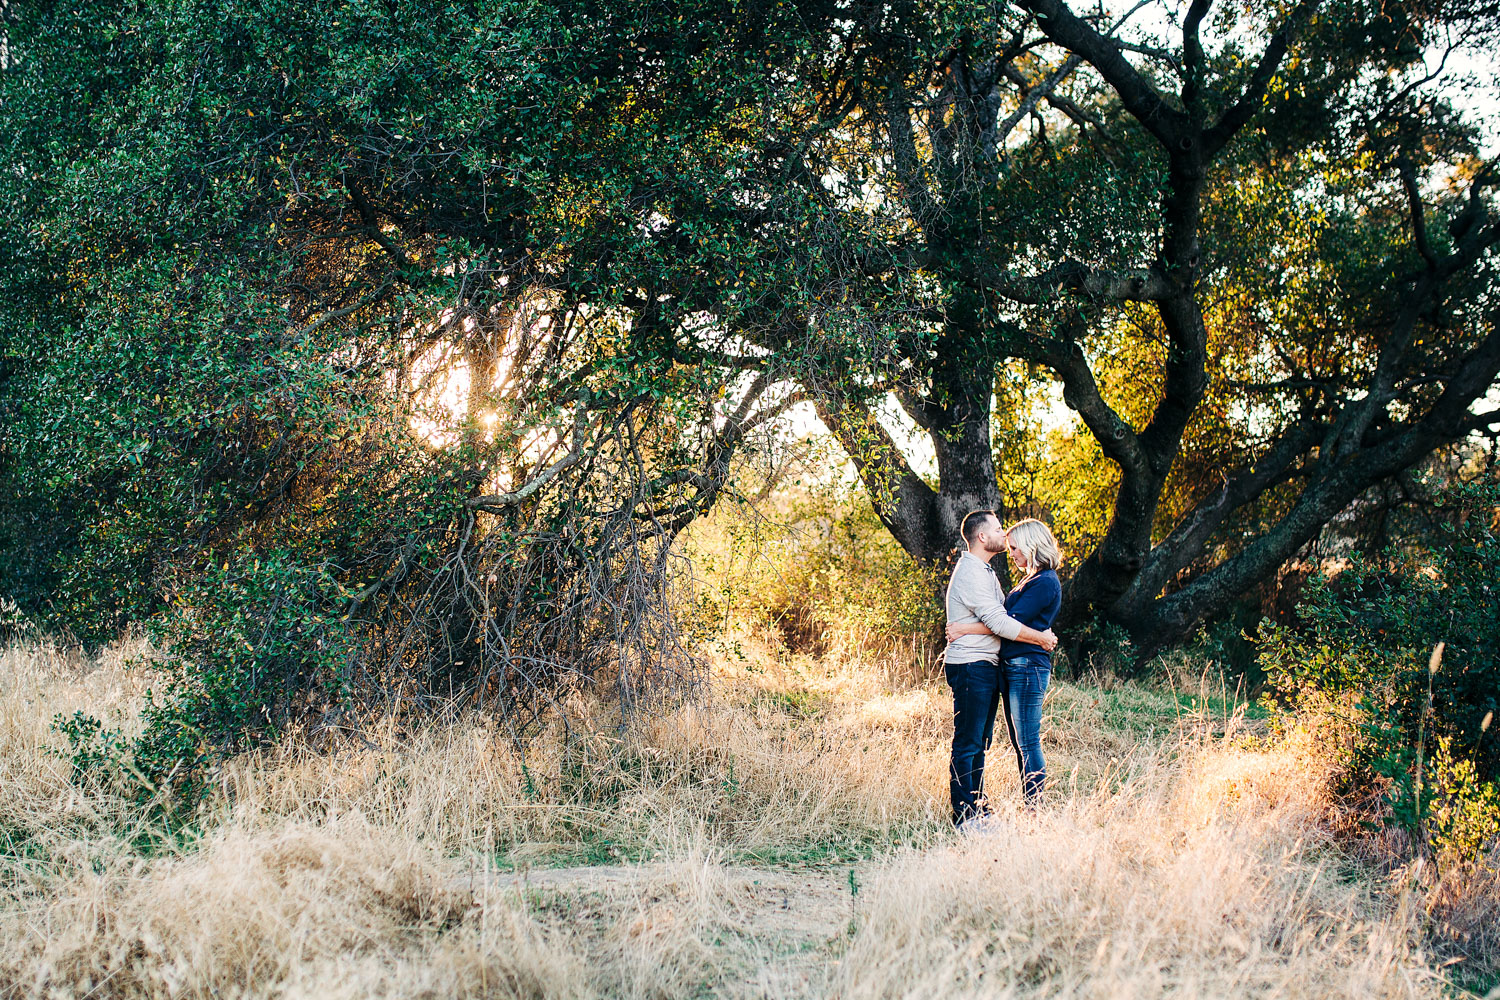 A husband kisses his wife's forehead near a large tree during their family photo session outside during golden hour in Roseville, California.